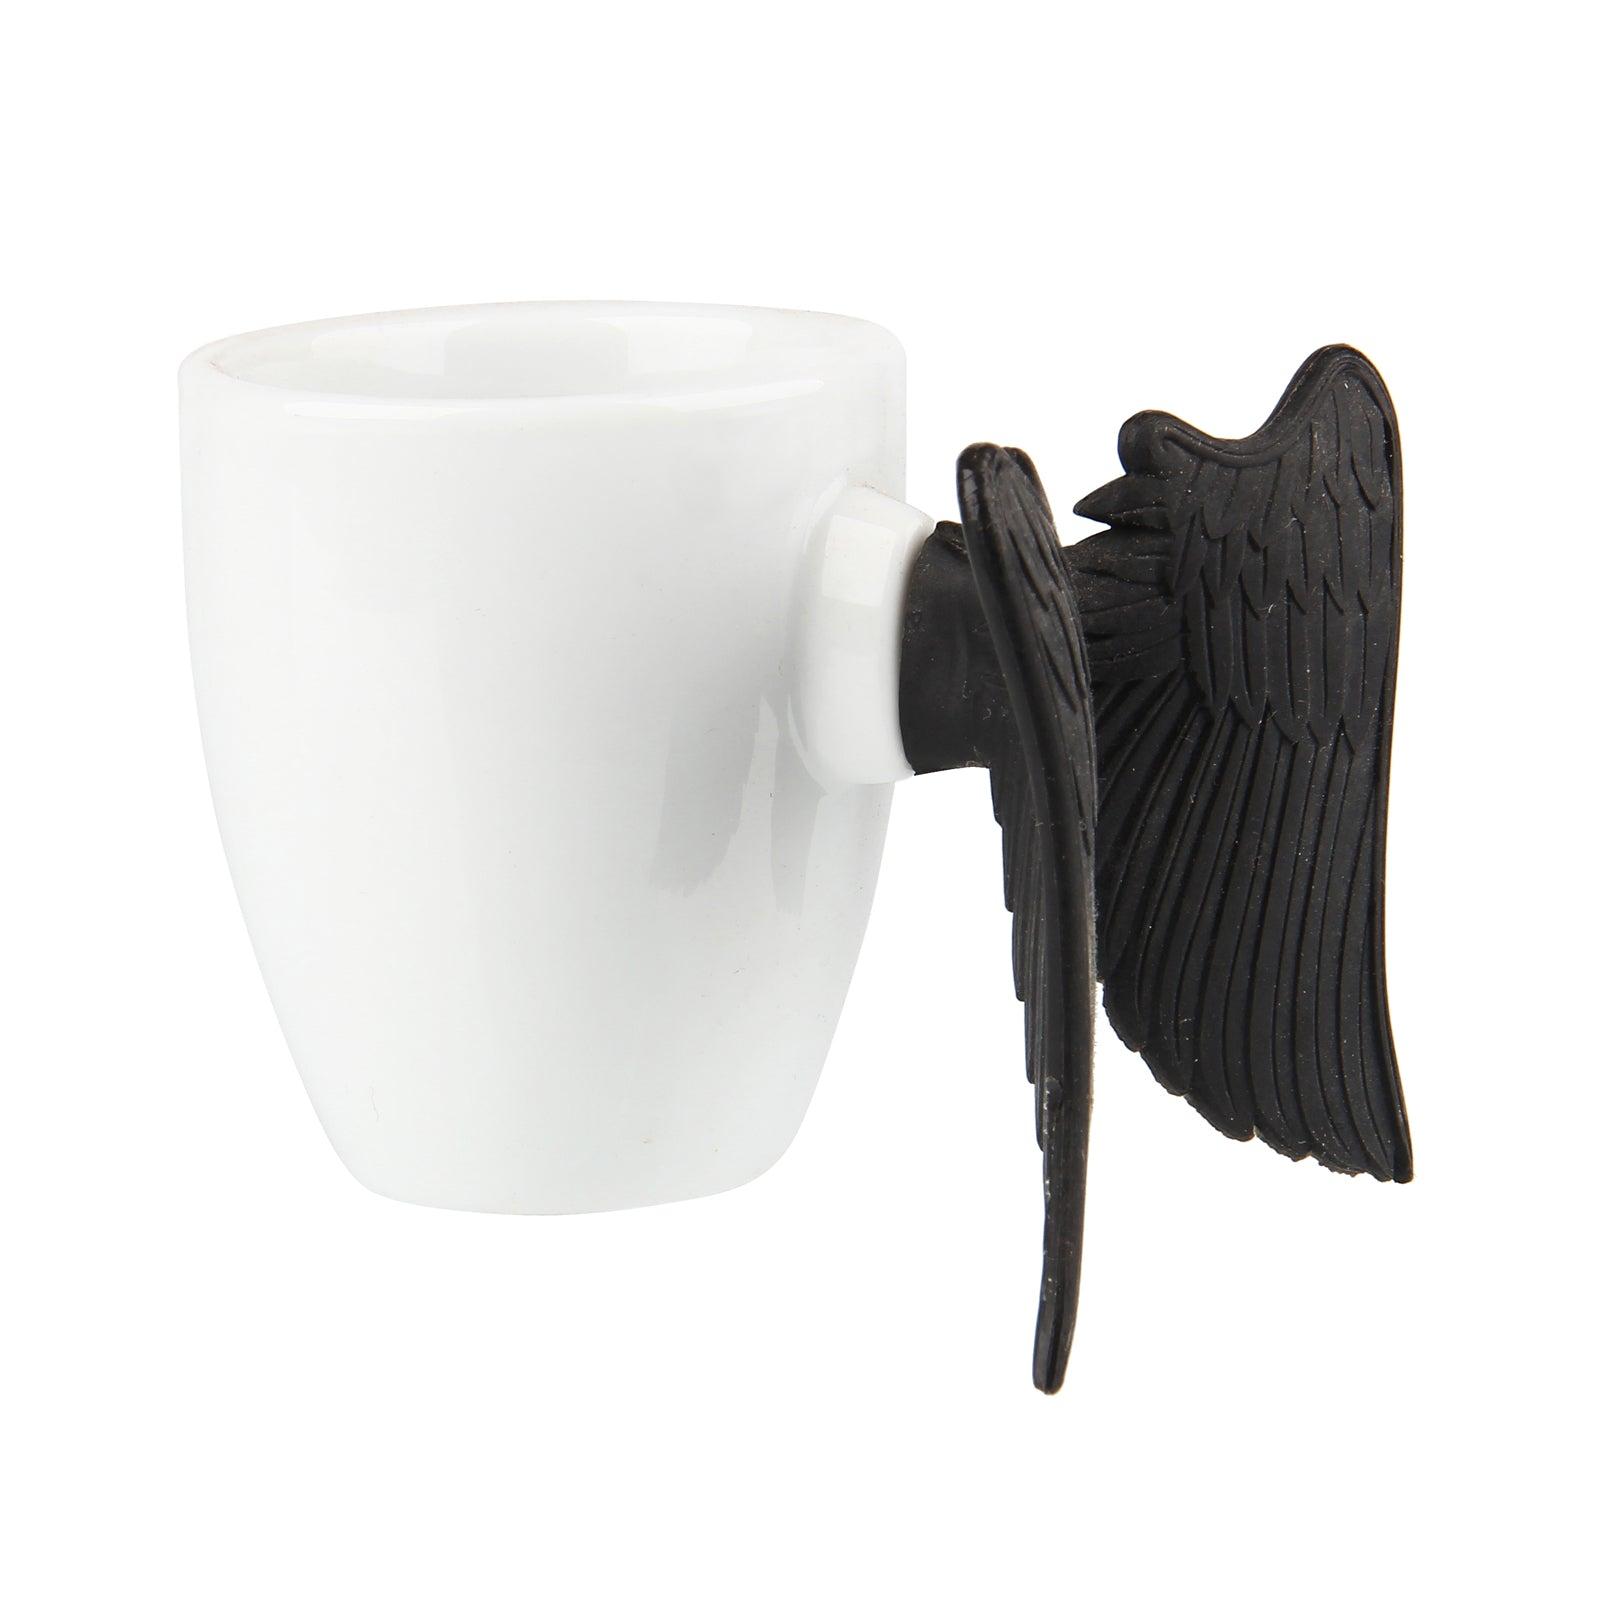 Inspirational Angel Cup - Let Your Light Shine - Black Wings